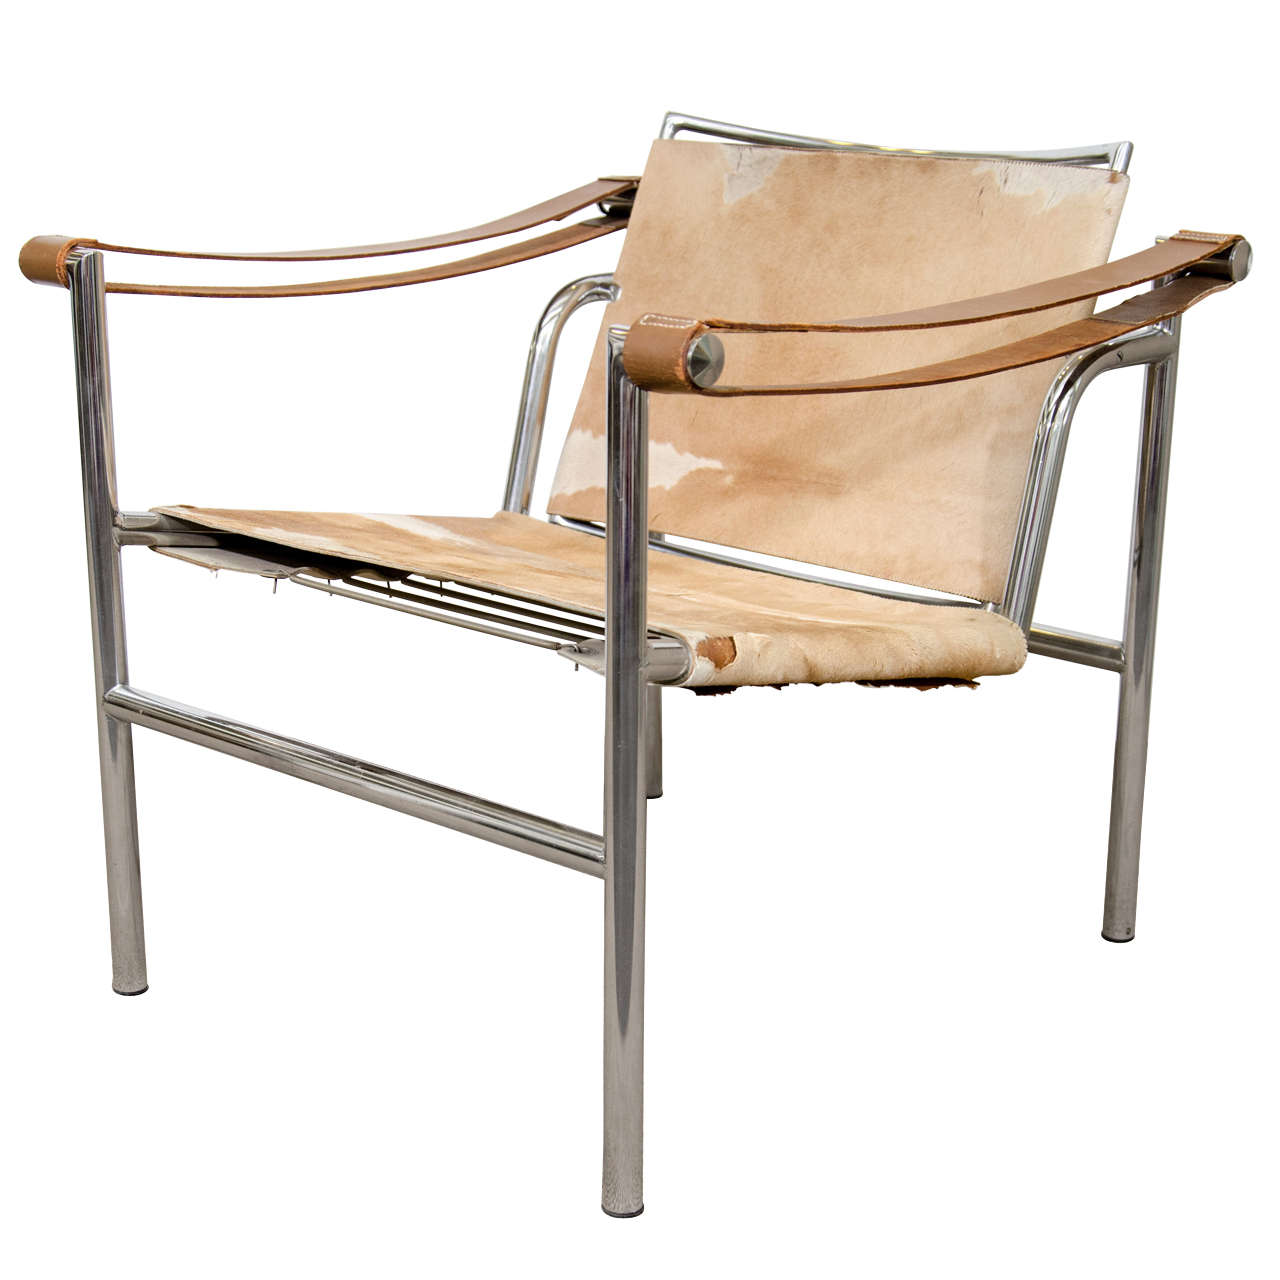 Le corbusier chair vintage - Mid Century Le Corbusier Sling Chair In Hide 1